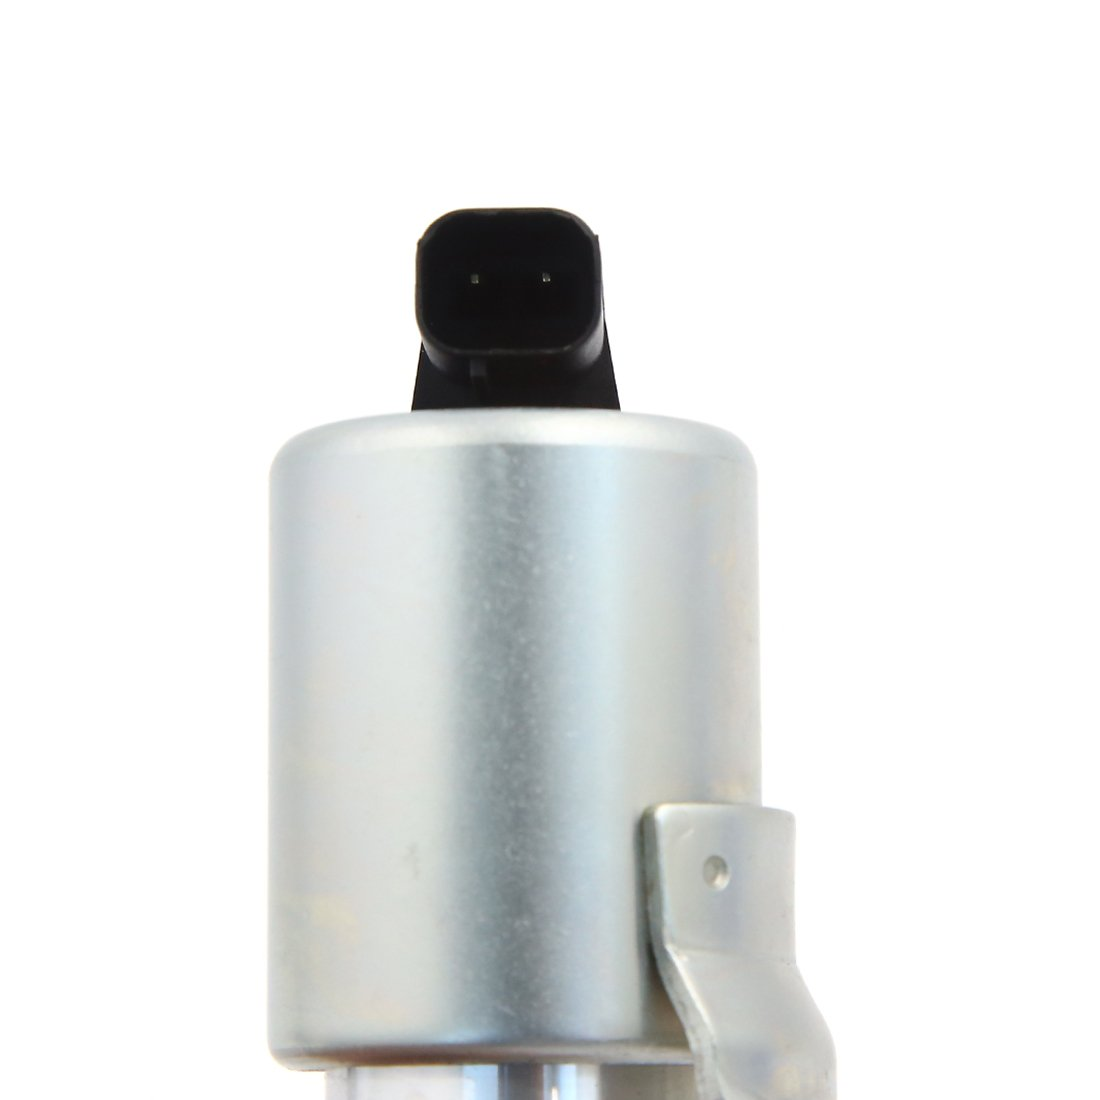 Uxcell a16120700ux0181 6M8G6M280 L3K945582 Variable Valve Timing Solenoid for 04-13 Mazda3 06-13 Mazda6